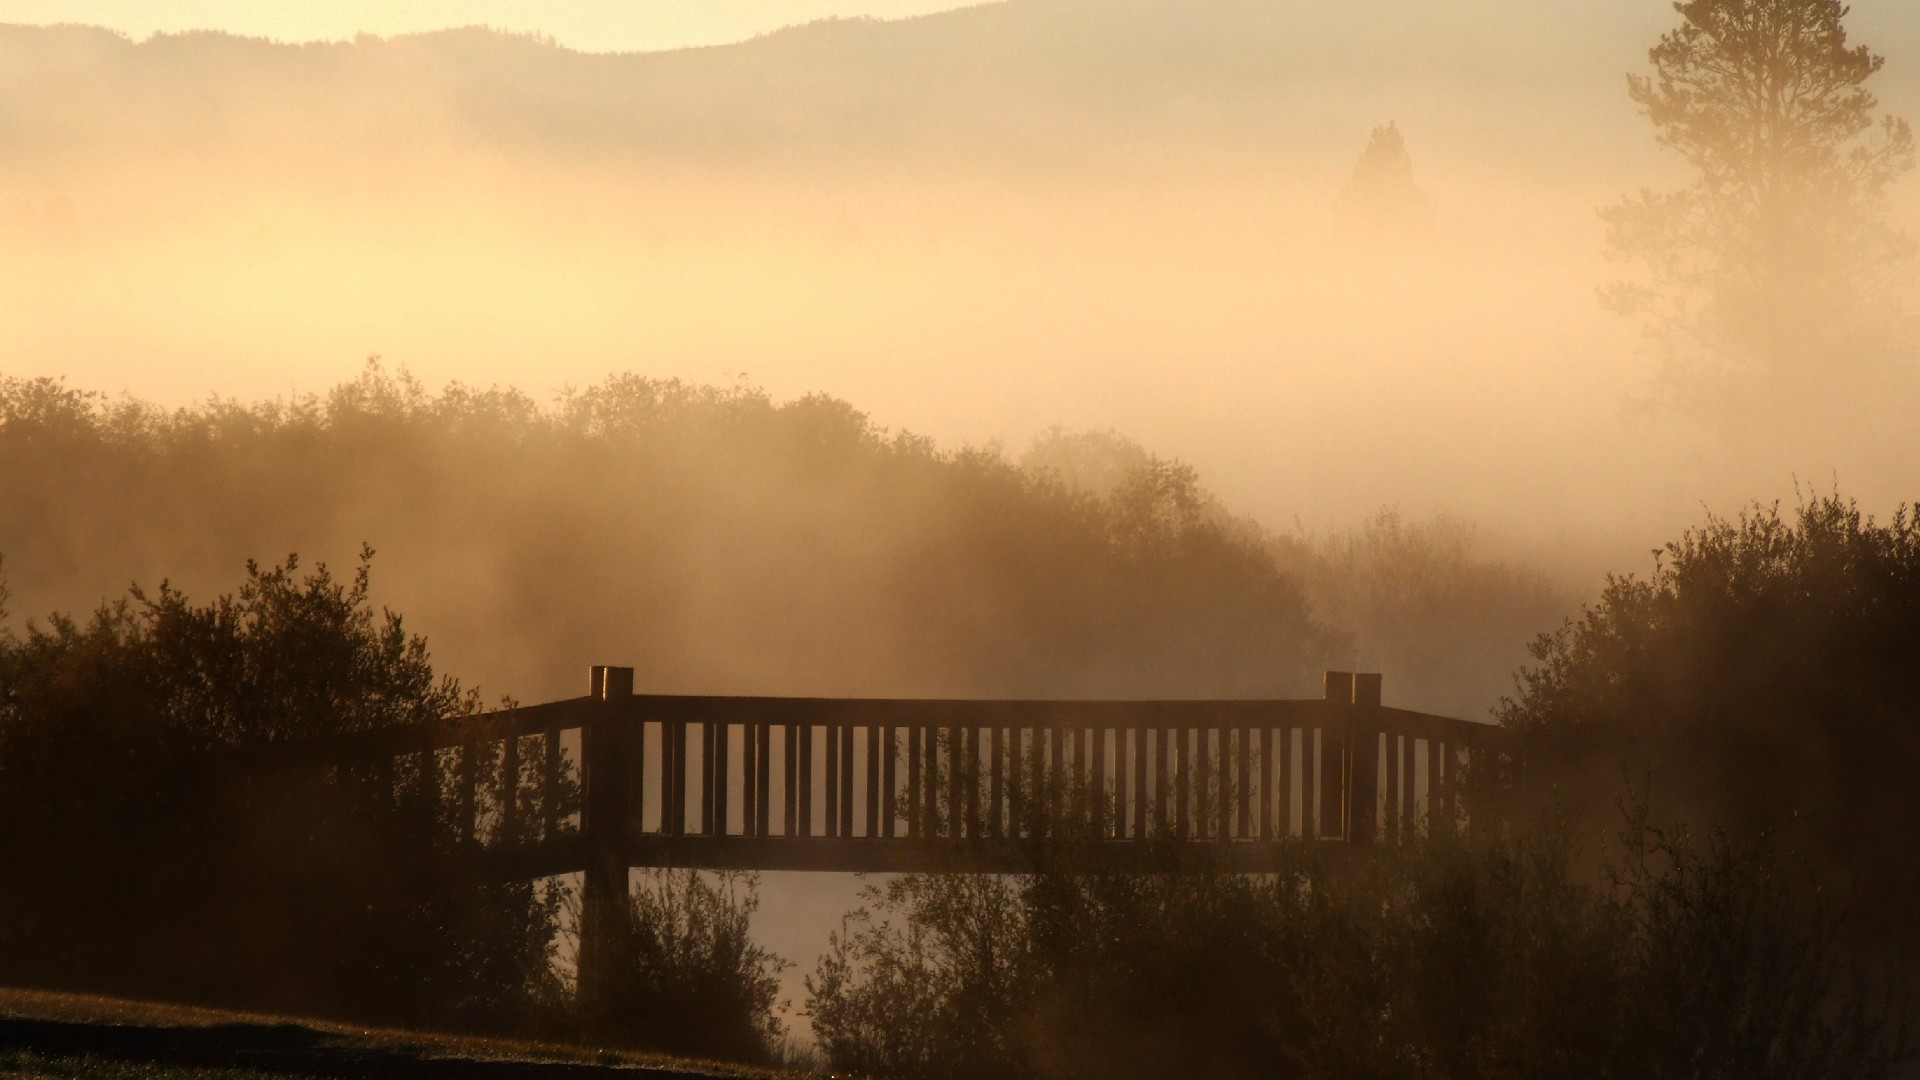 1920x1080 ... Next: Bridge in mist. Category: Nature wallpapers